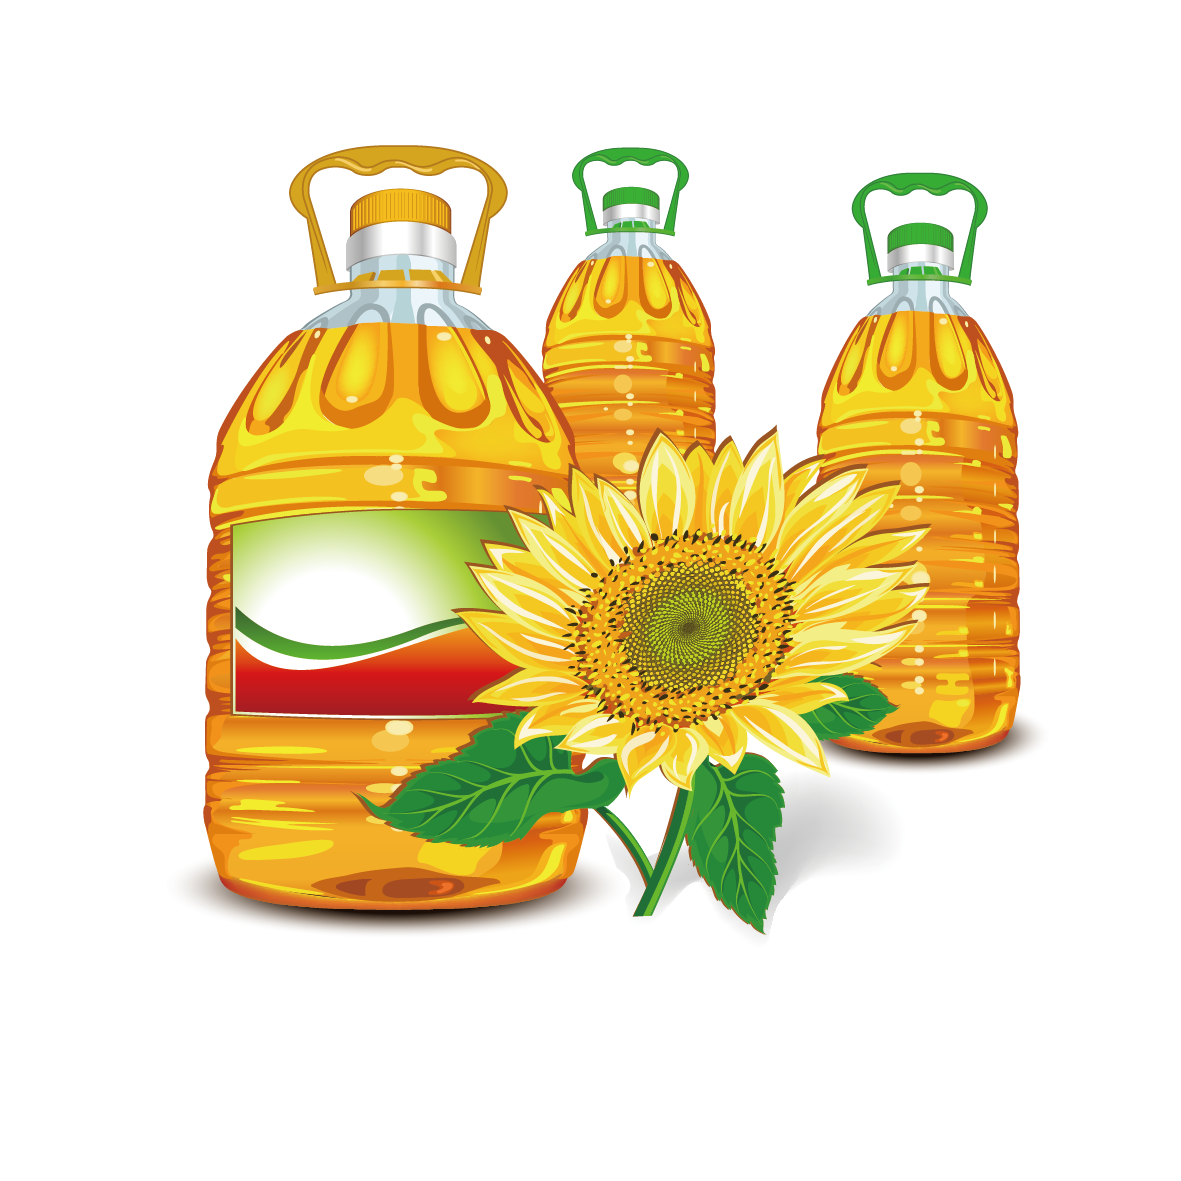 Nut clipart oil seed, Nut oil seed Transparent FREE for.